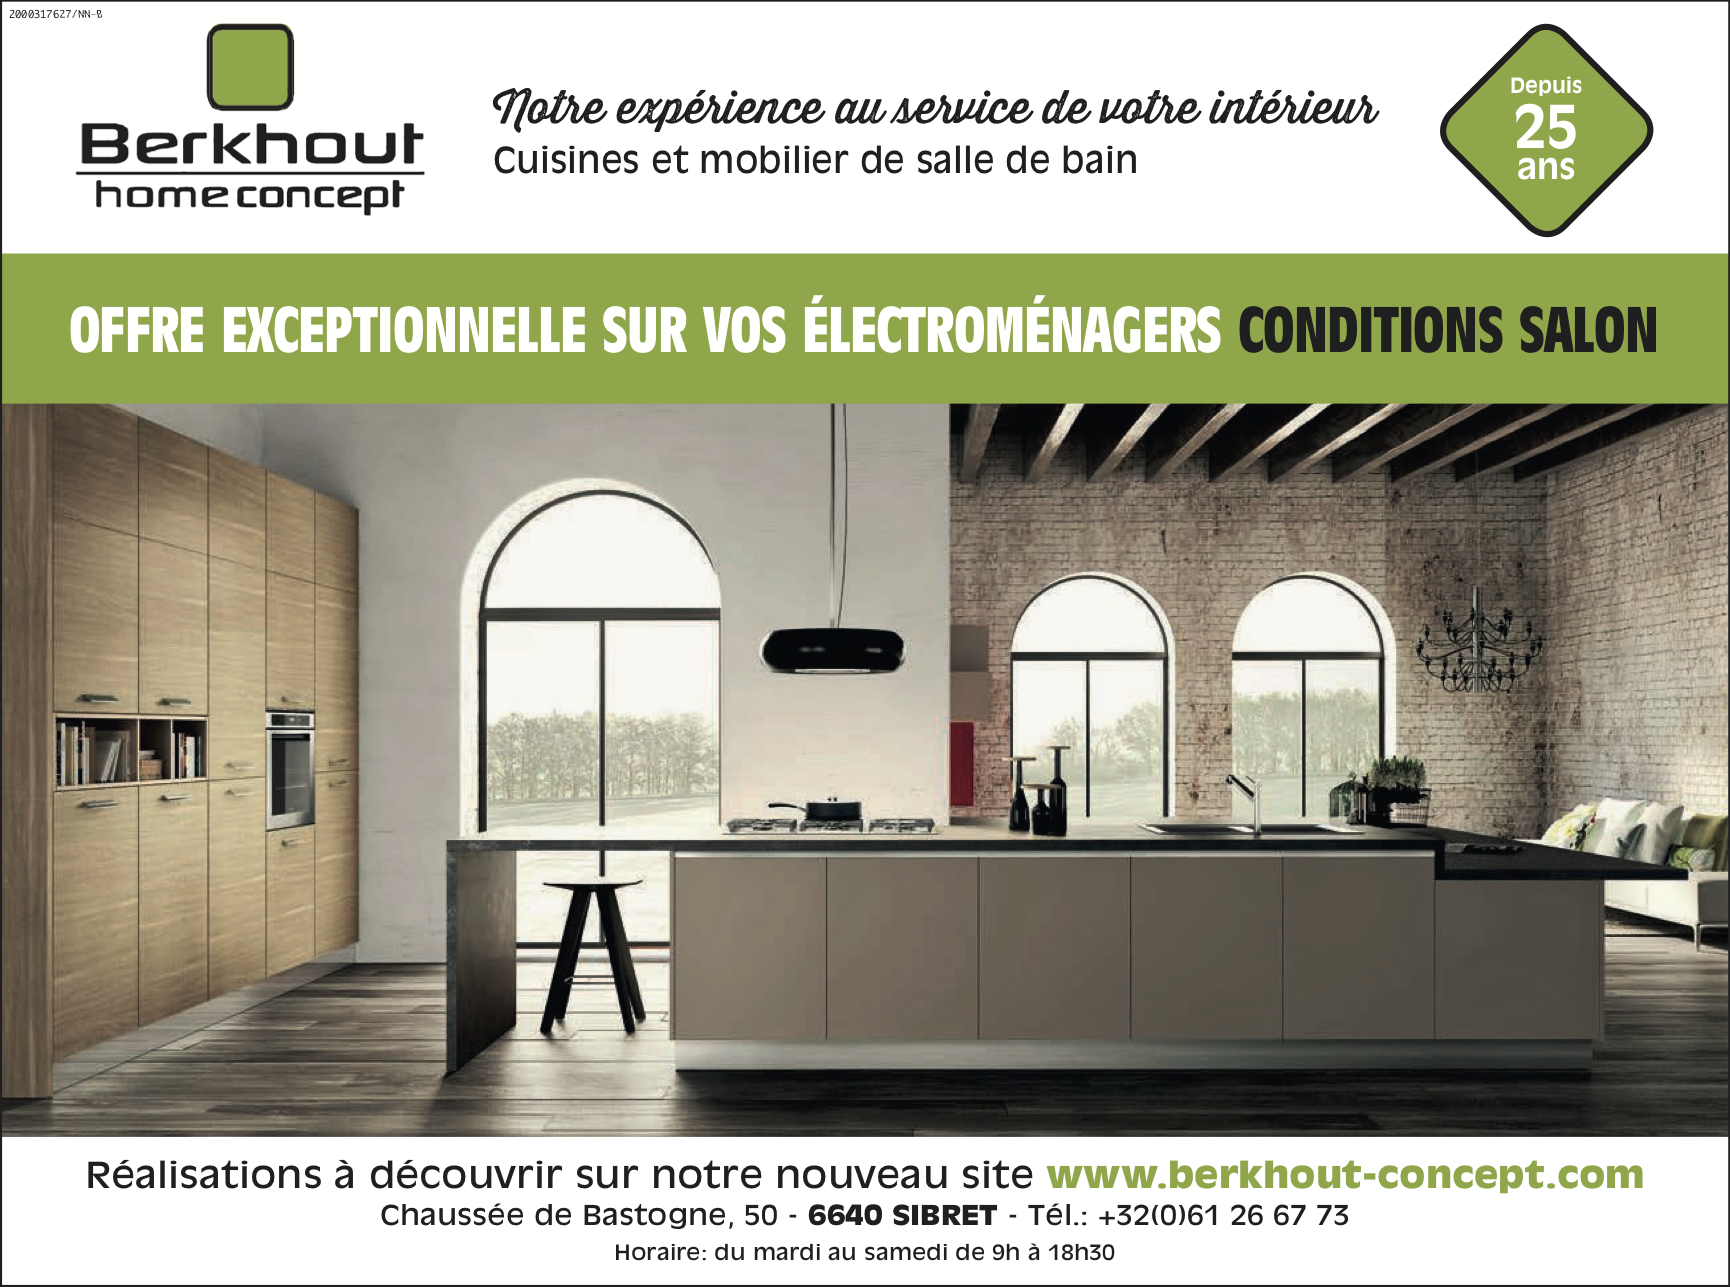 BERKHOUT-CONCEPT condtions salon